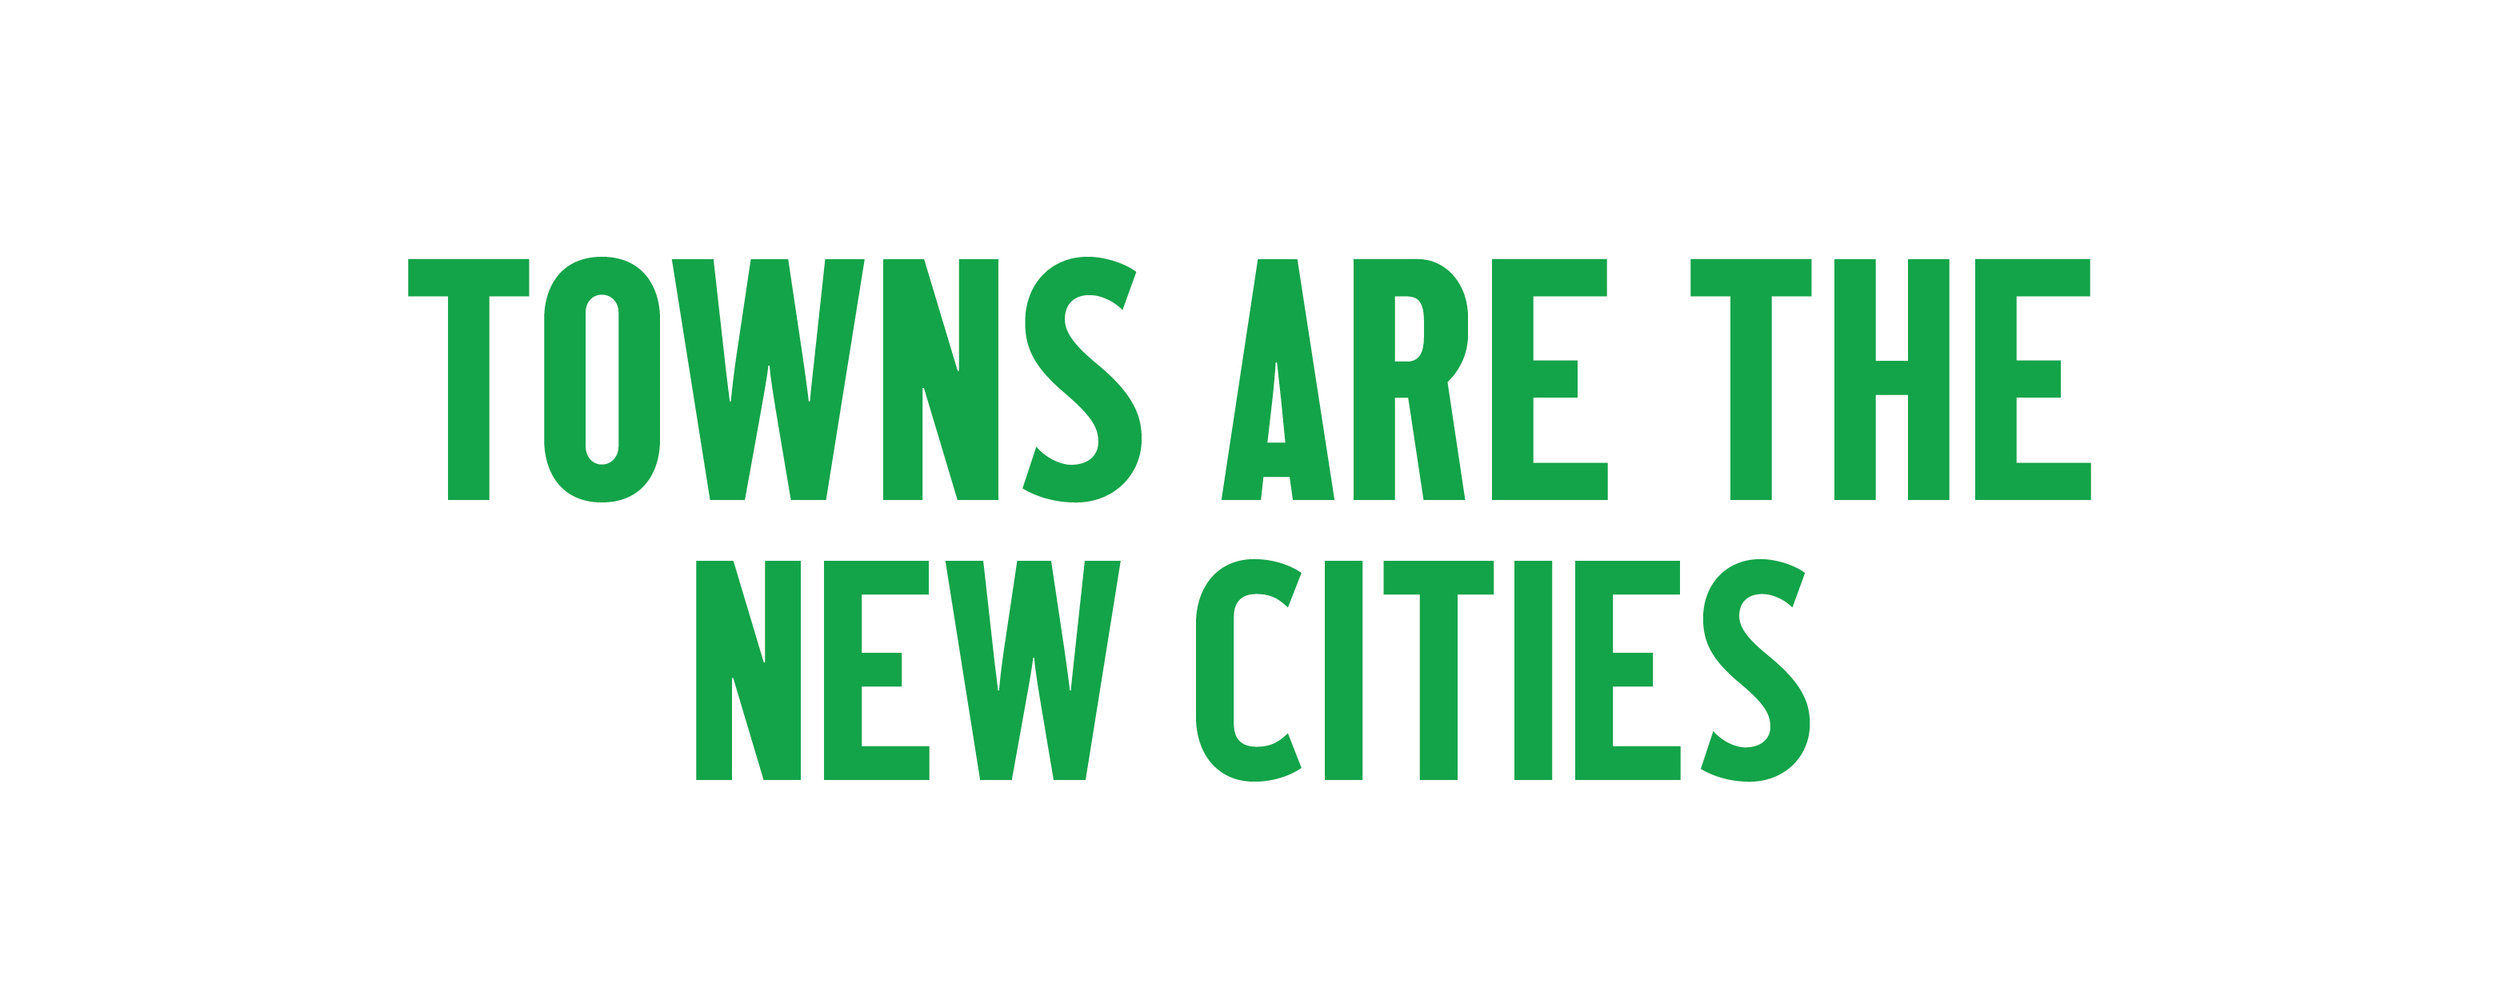 Towns are the new cities_WO.jpg